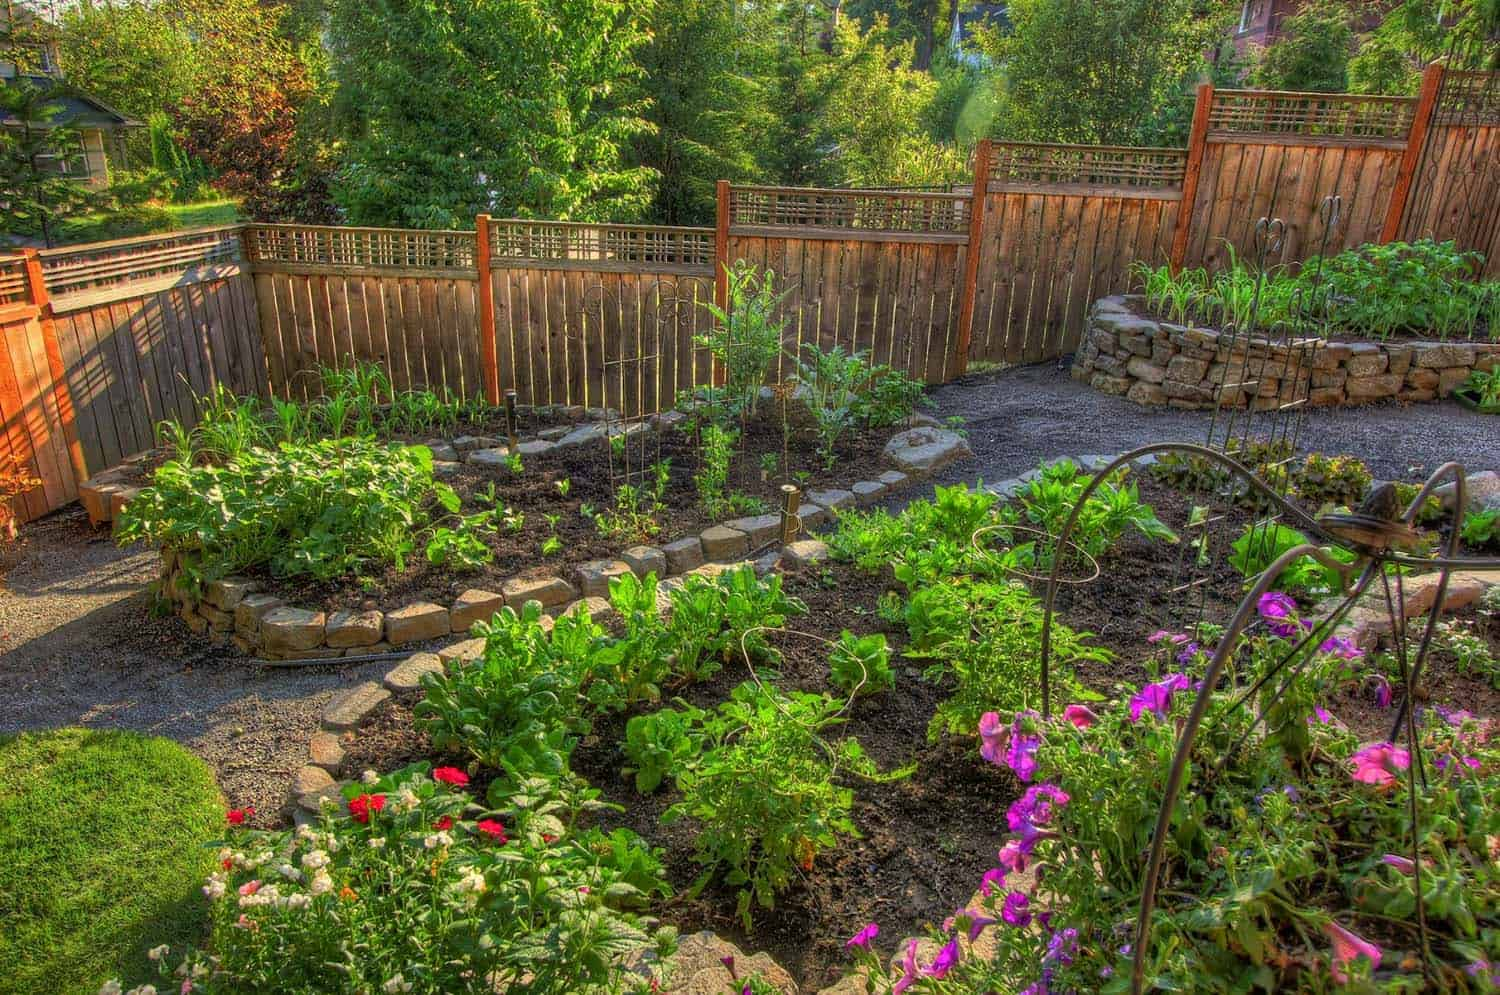 30 Amazing Ideas For Growing A Vegetable Garden In Your ... on Outdoor Vegetable Garden Ideas id=98109